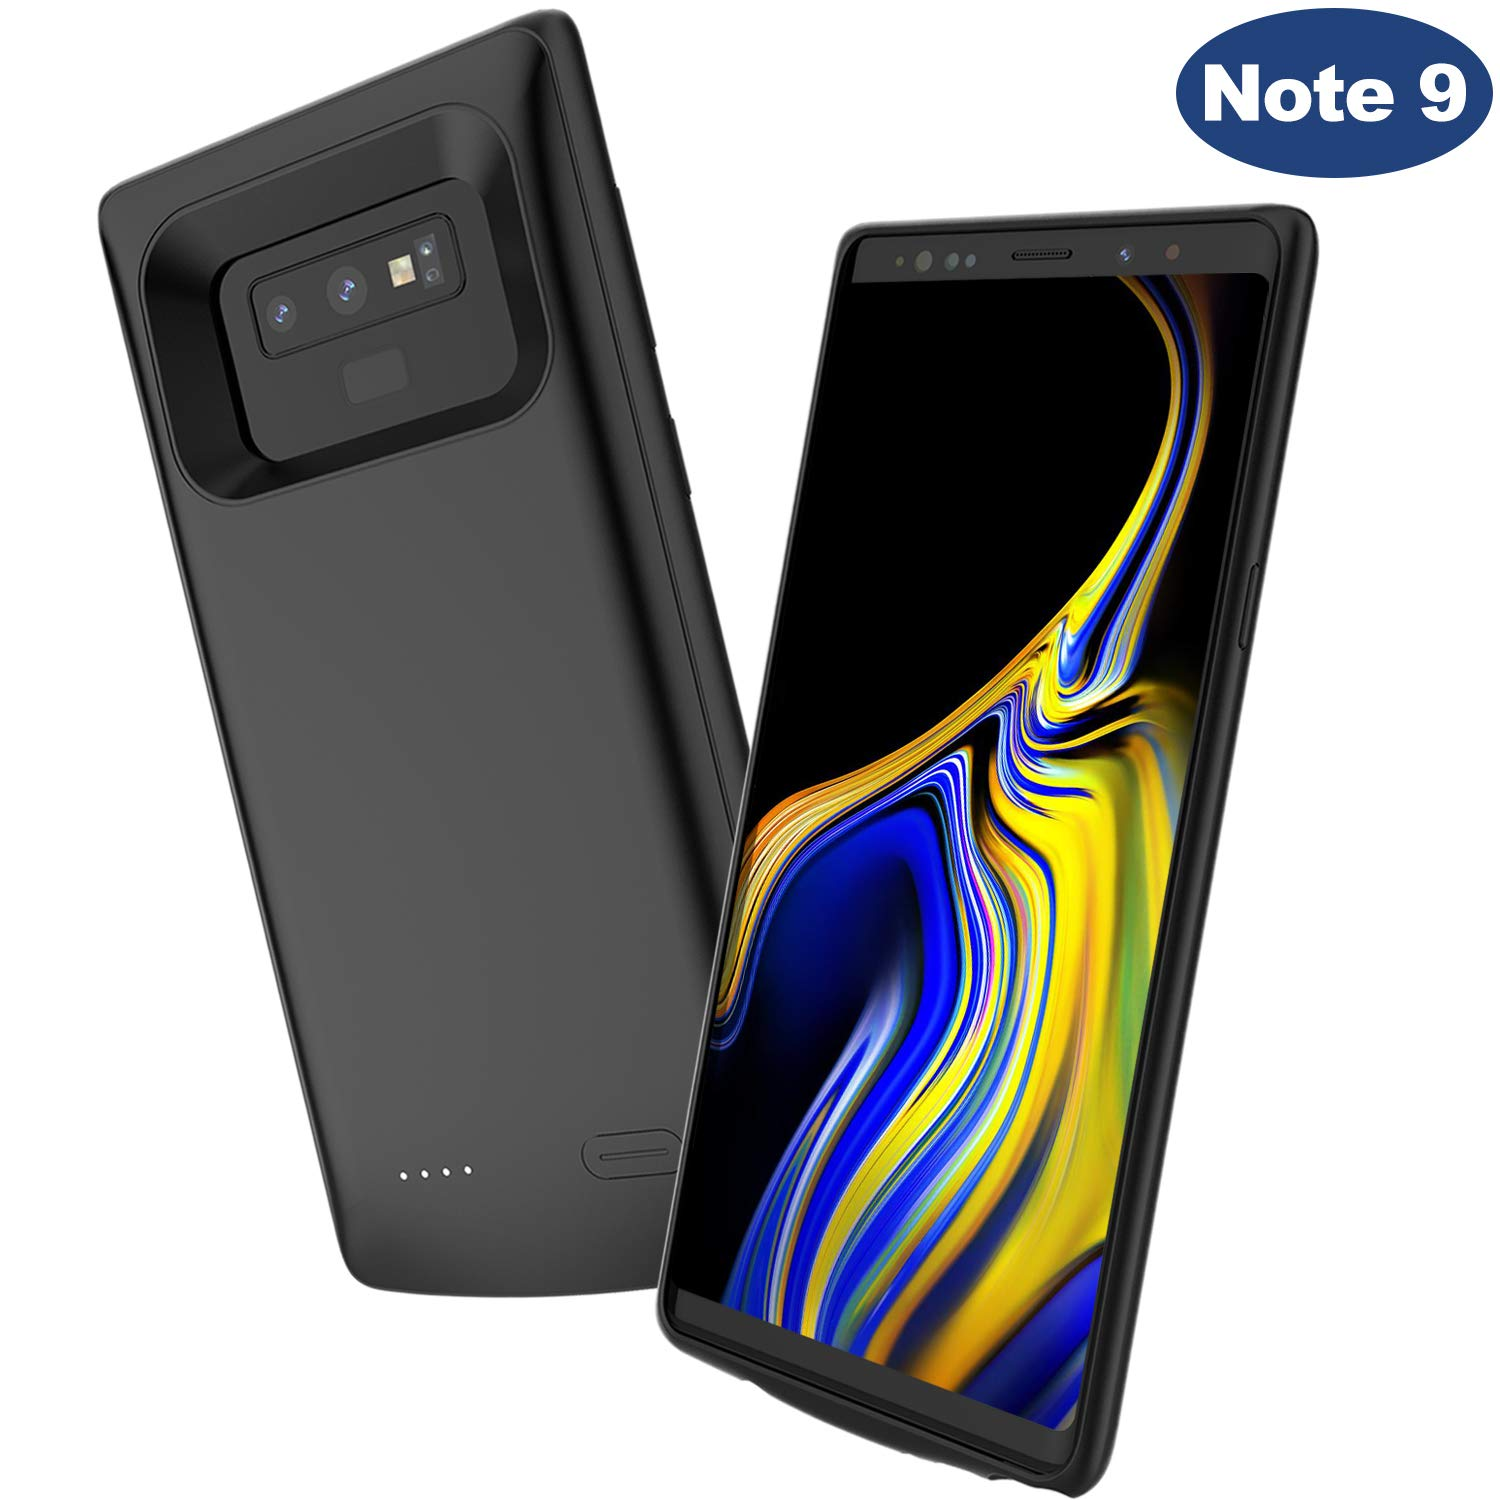 Galaxy-Note-9-battery-case-2